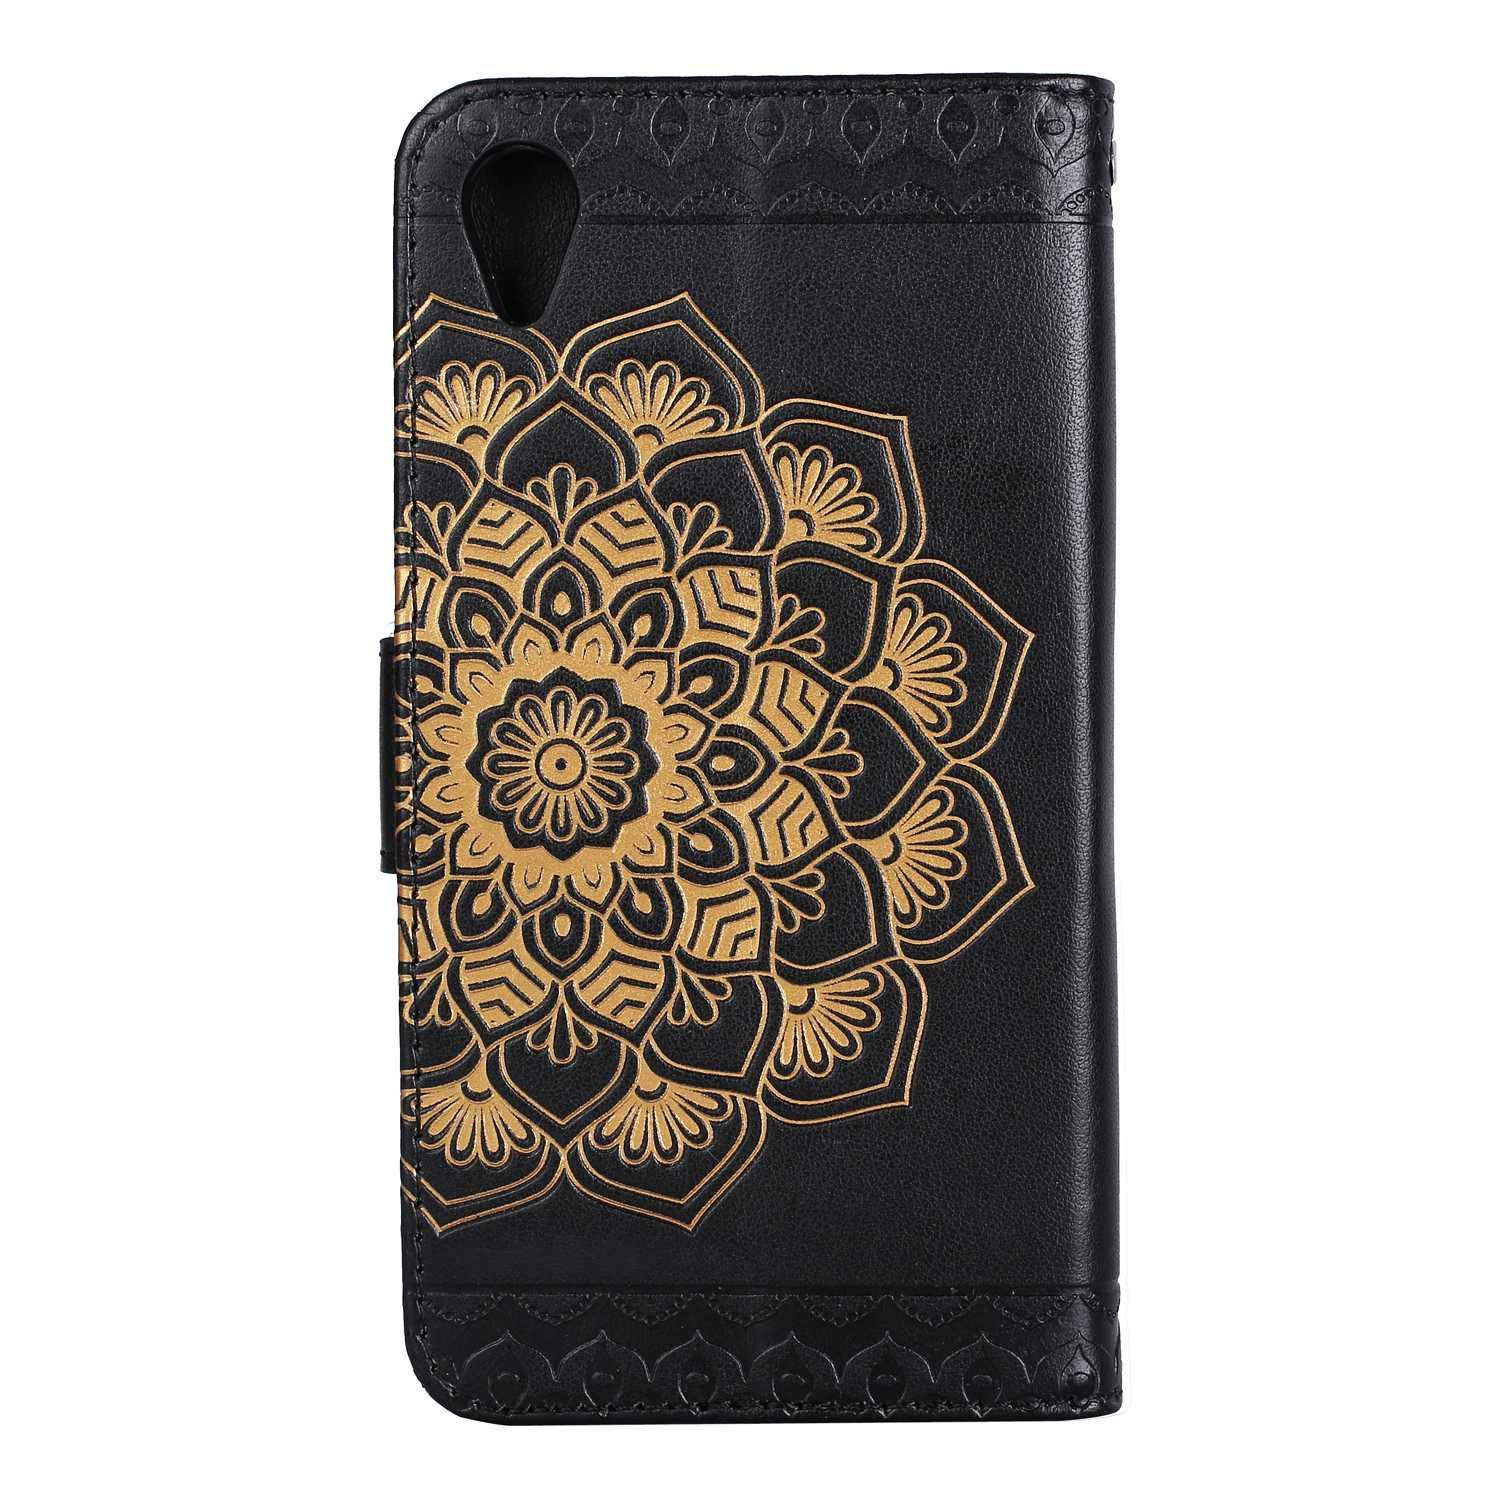 Soft Tactile Elegant Case Cover with Embedded Magnetic Closure for Sony Xperia XA1- Brown Casake Sony Xperia XA1 Wallet Leather Case, Sony Xperia XA1 Case Art